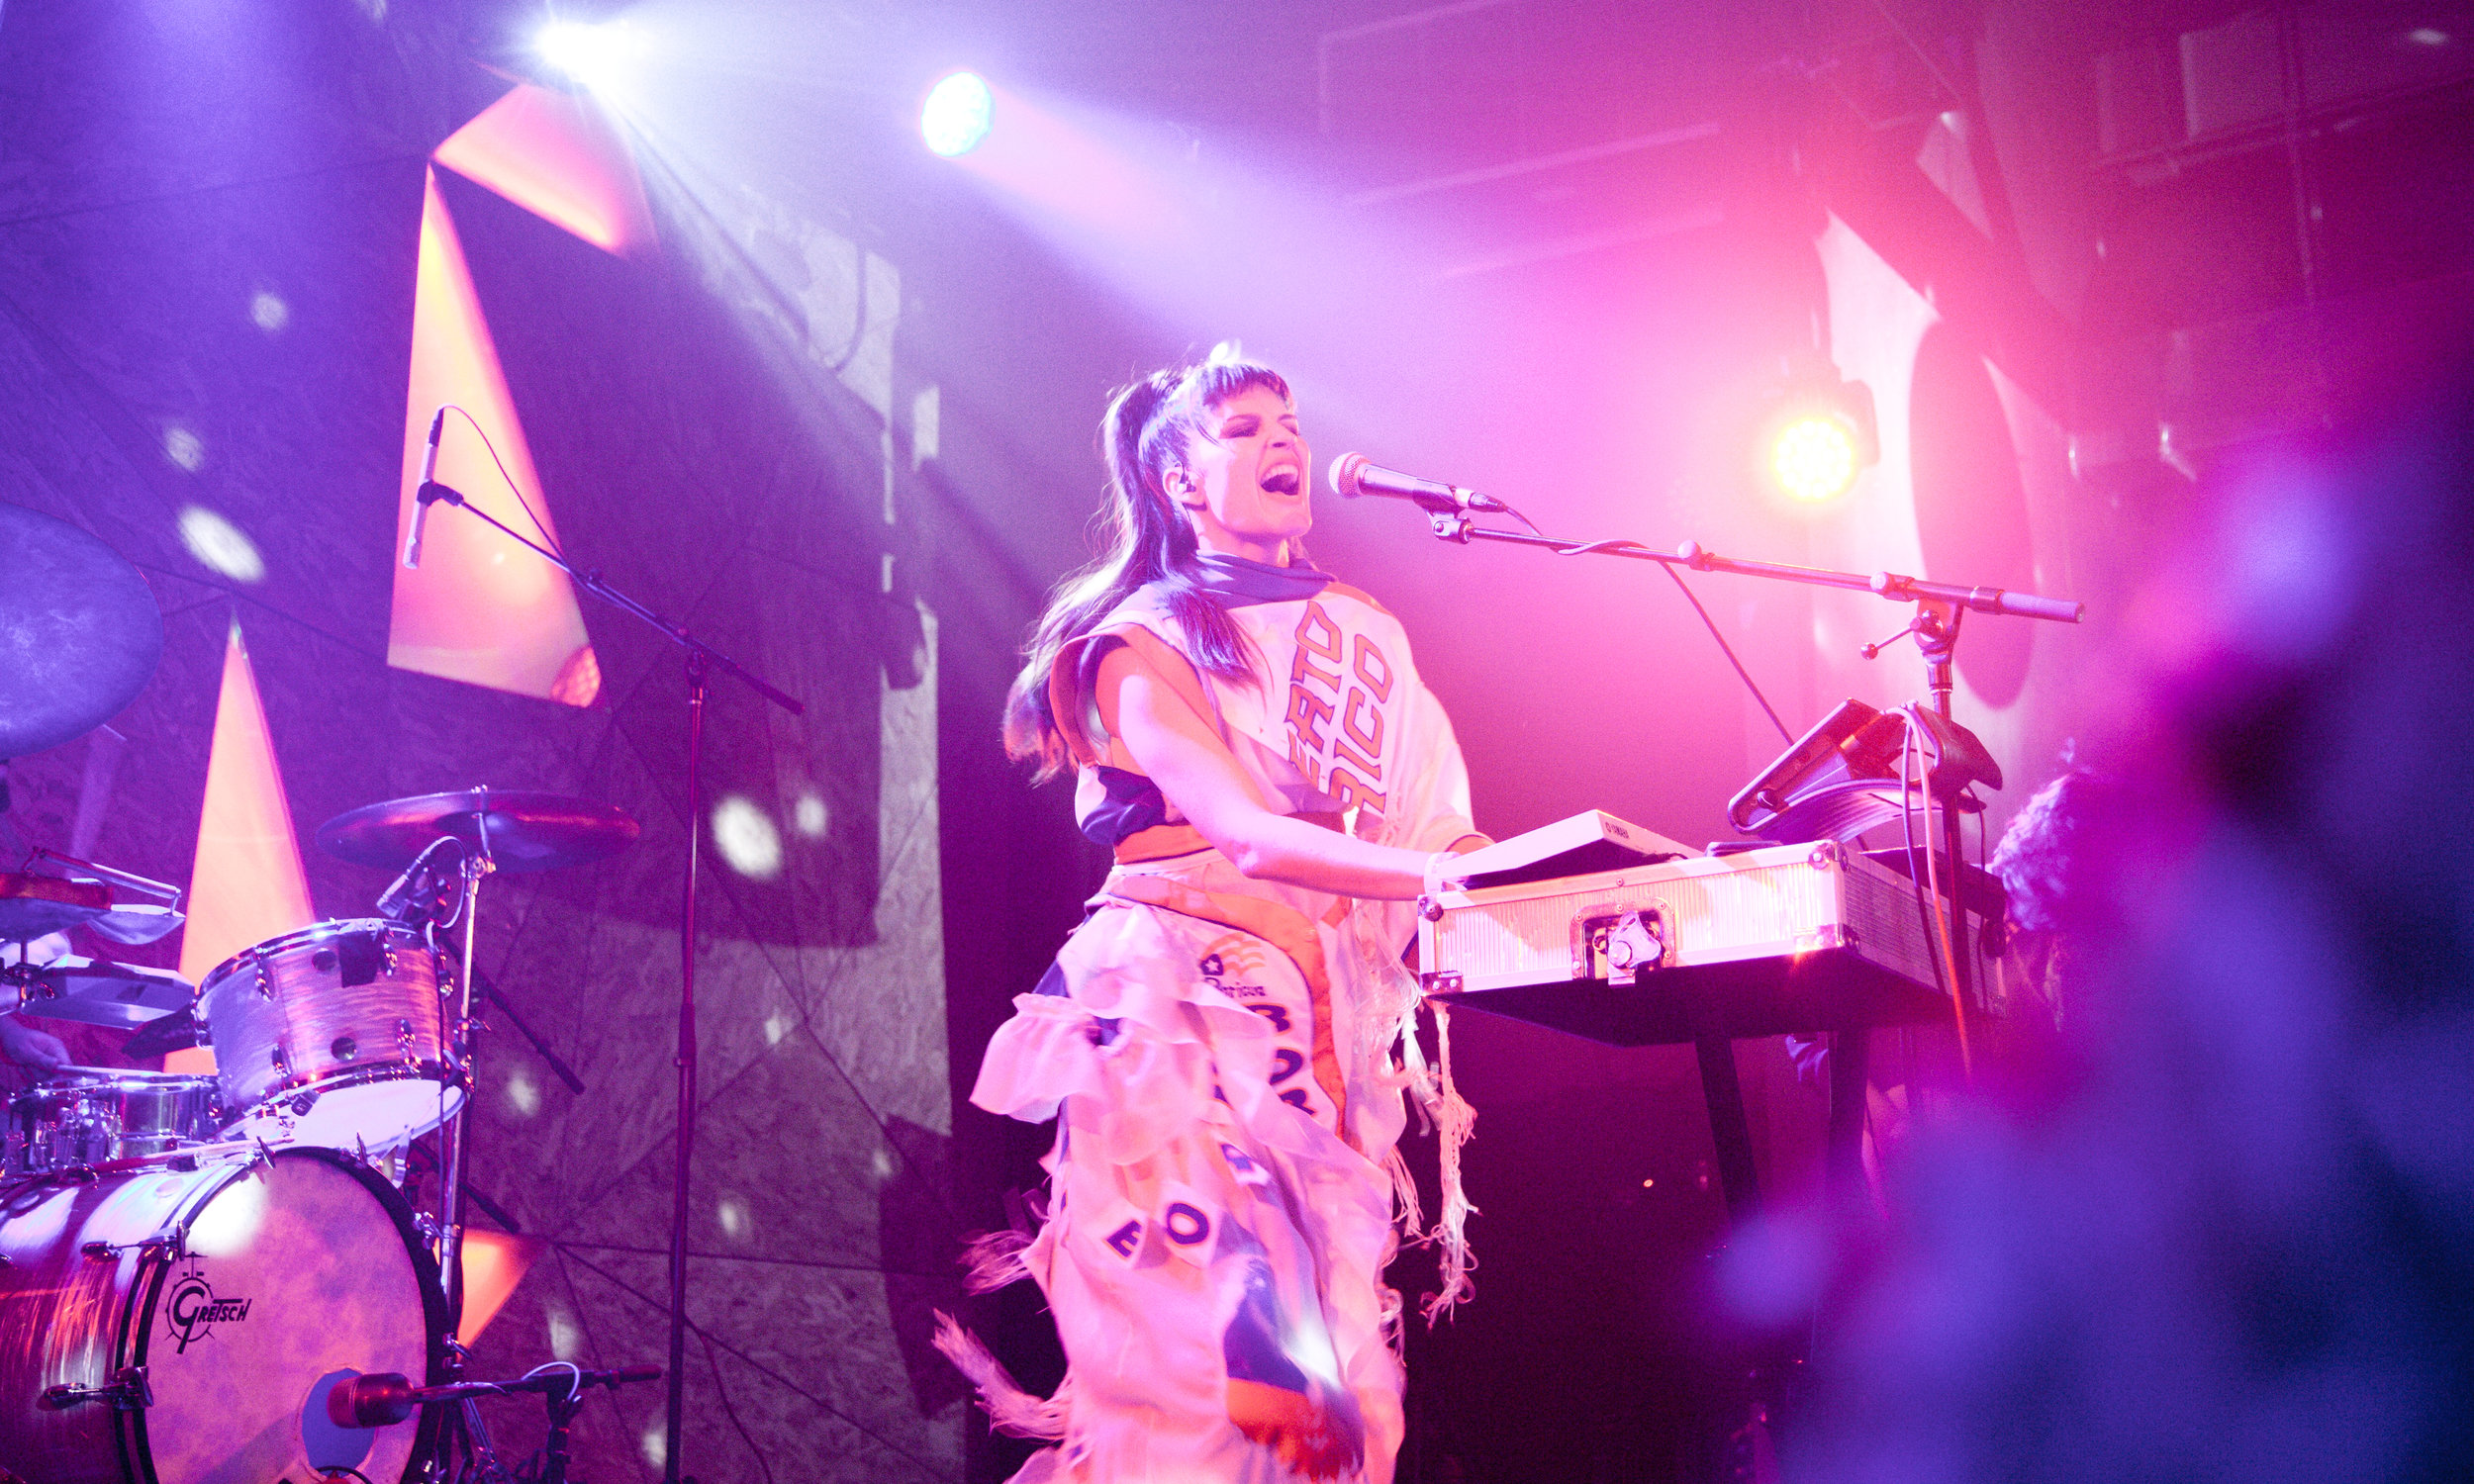 PRIMA FUND - @Elsewhere Space featuring Buscabulla performing for the PRIMA Fund Farewell Tribute